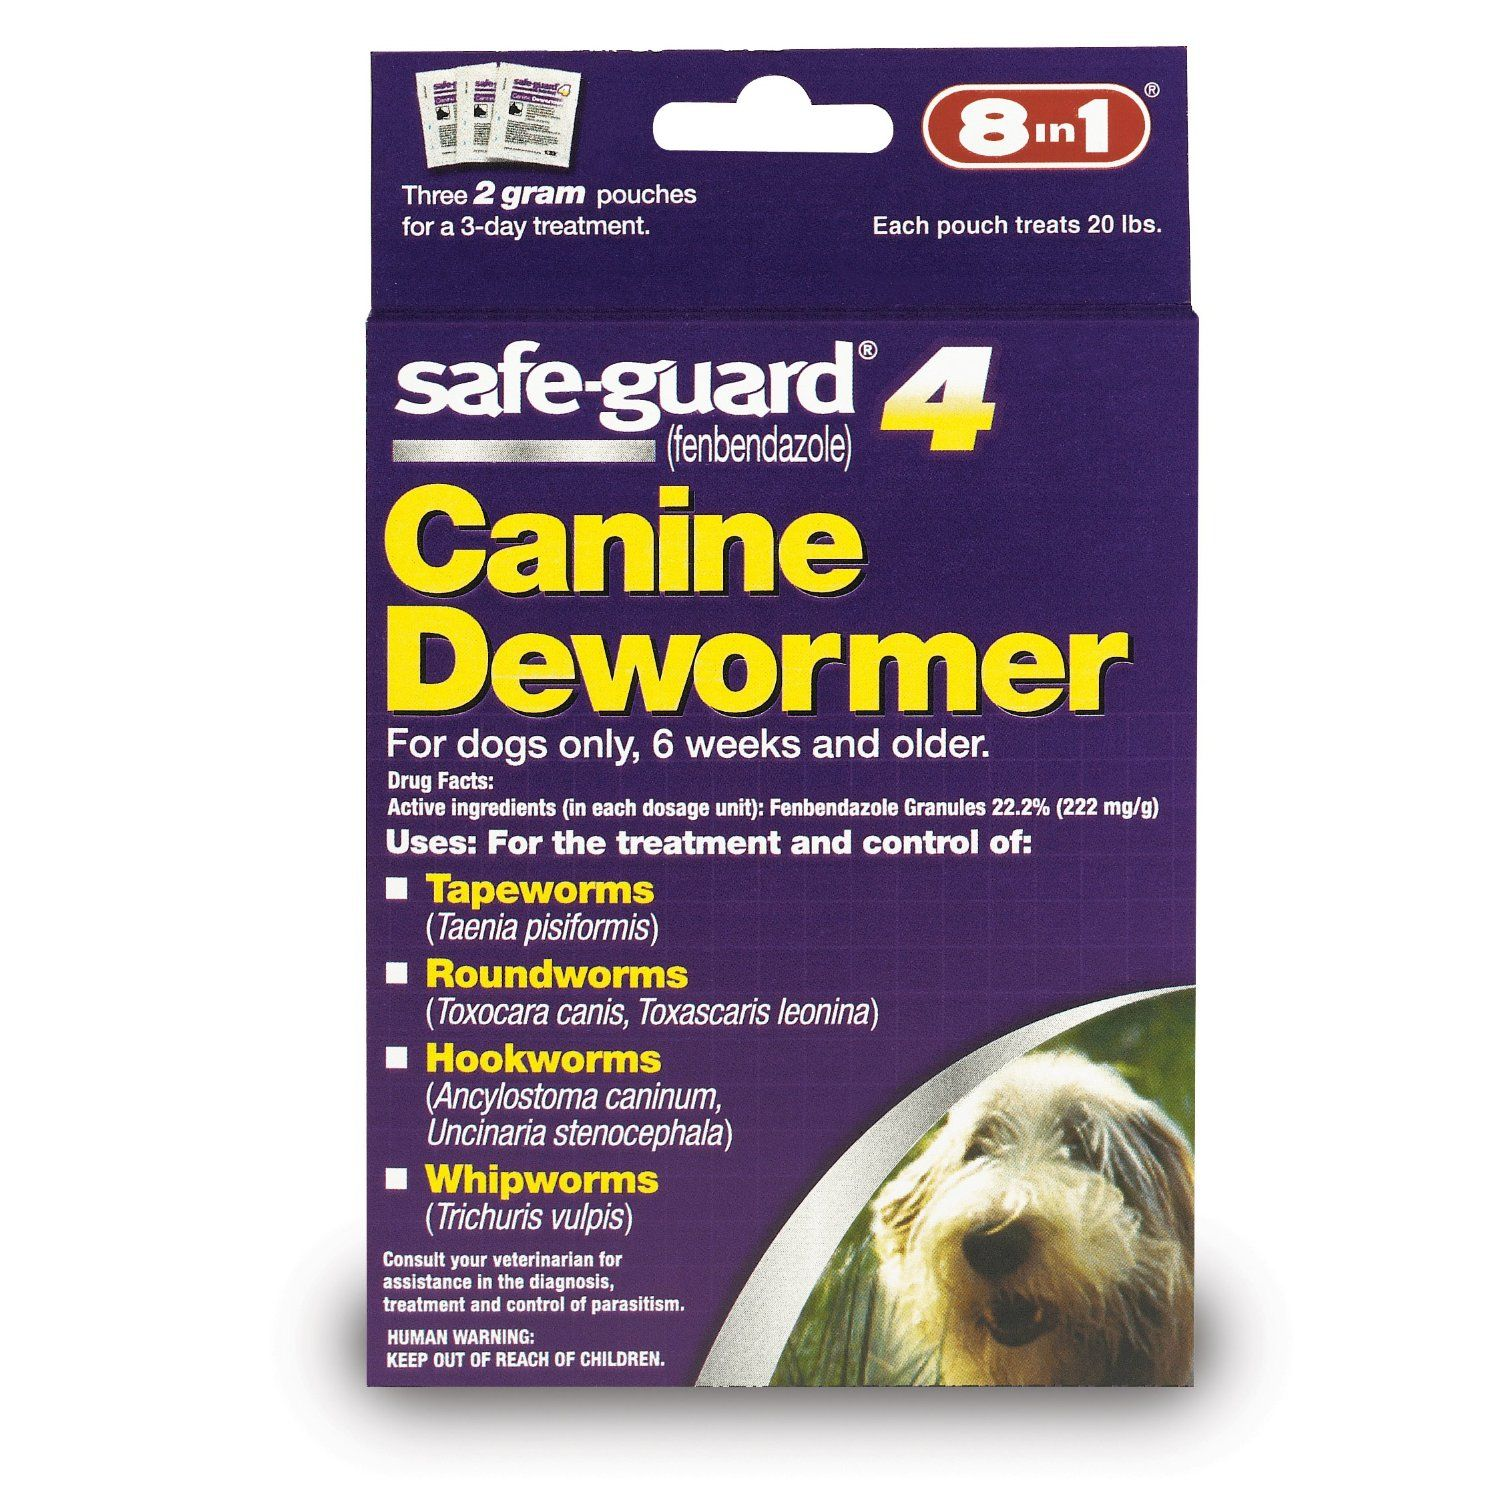 My Best Dog Dewormer Review And Rankings Deworming Dogs Pet